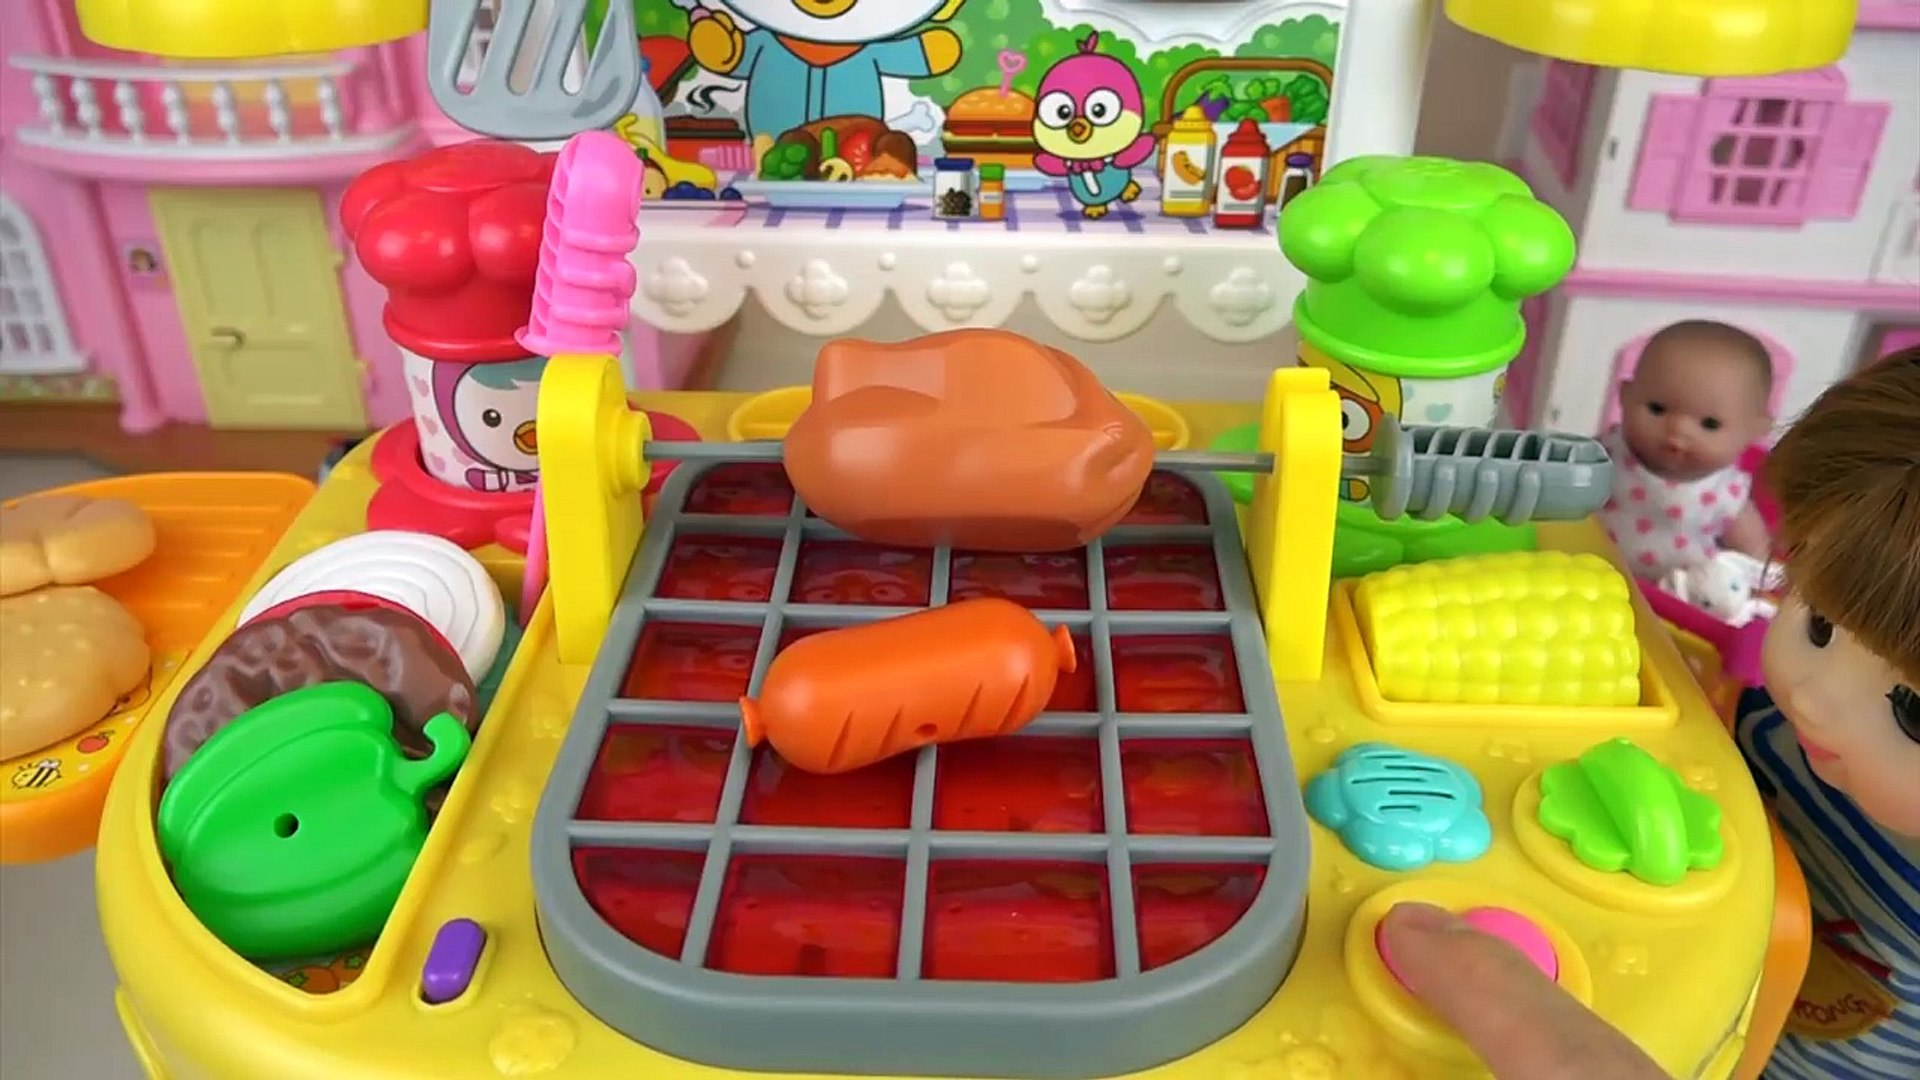 Baby Doll And Grill Kitchen Food Cooking Toys Play Video Dailymotion